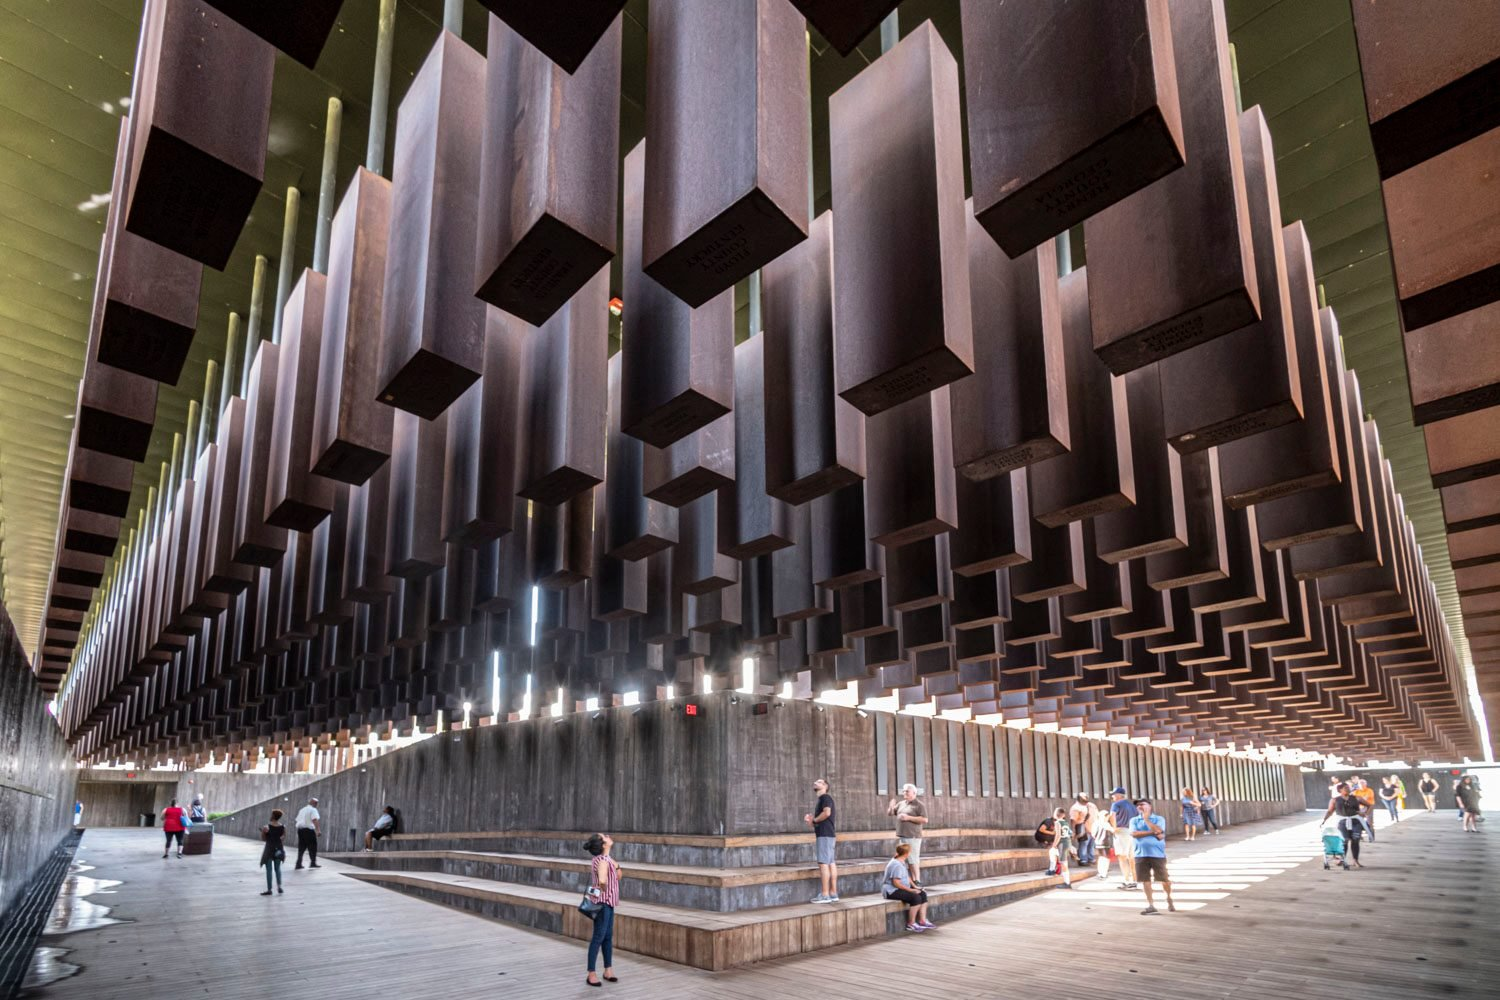 the national memorial for peace and justice in montgomery, alabama